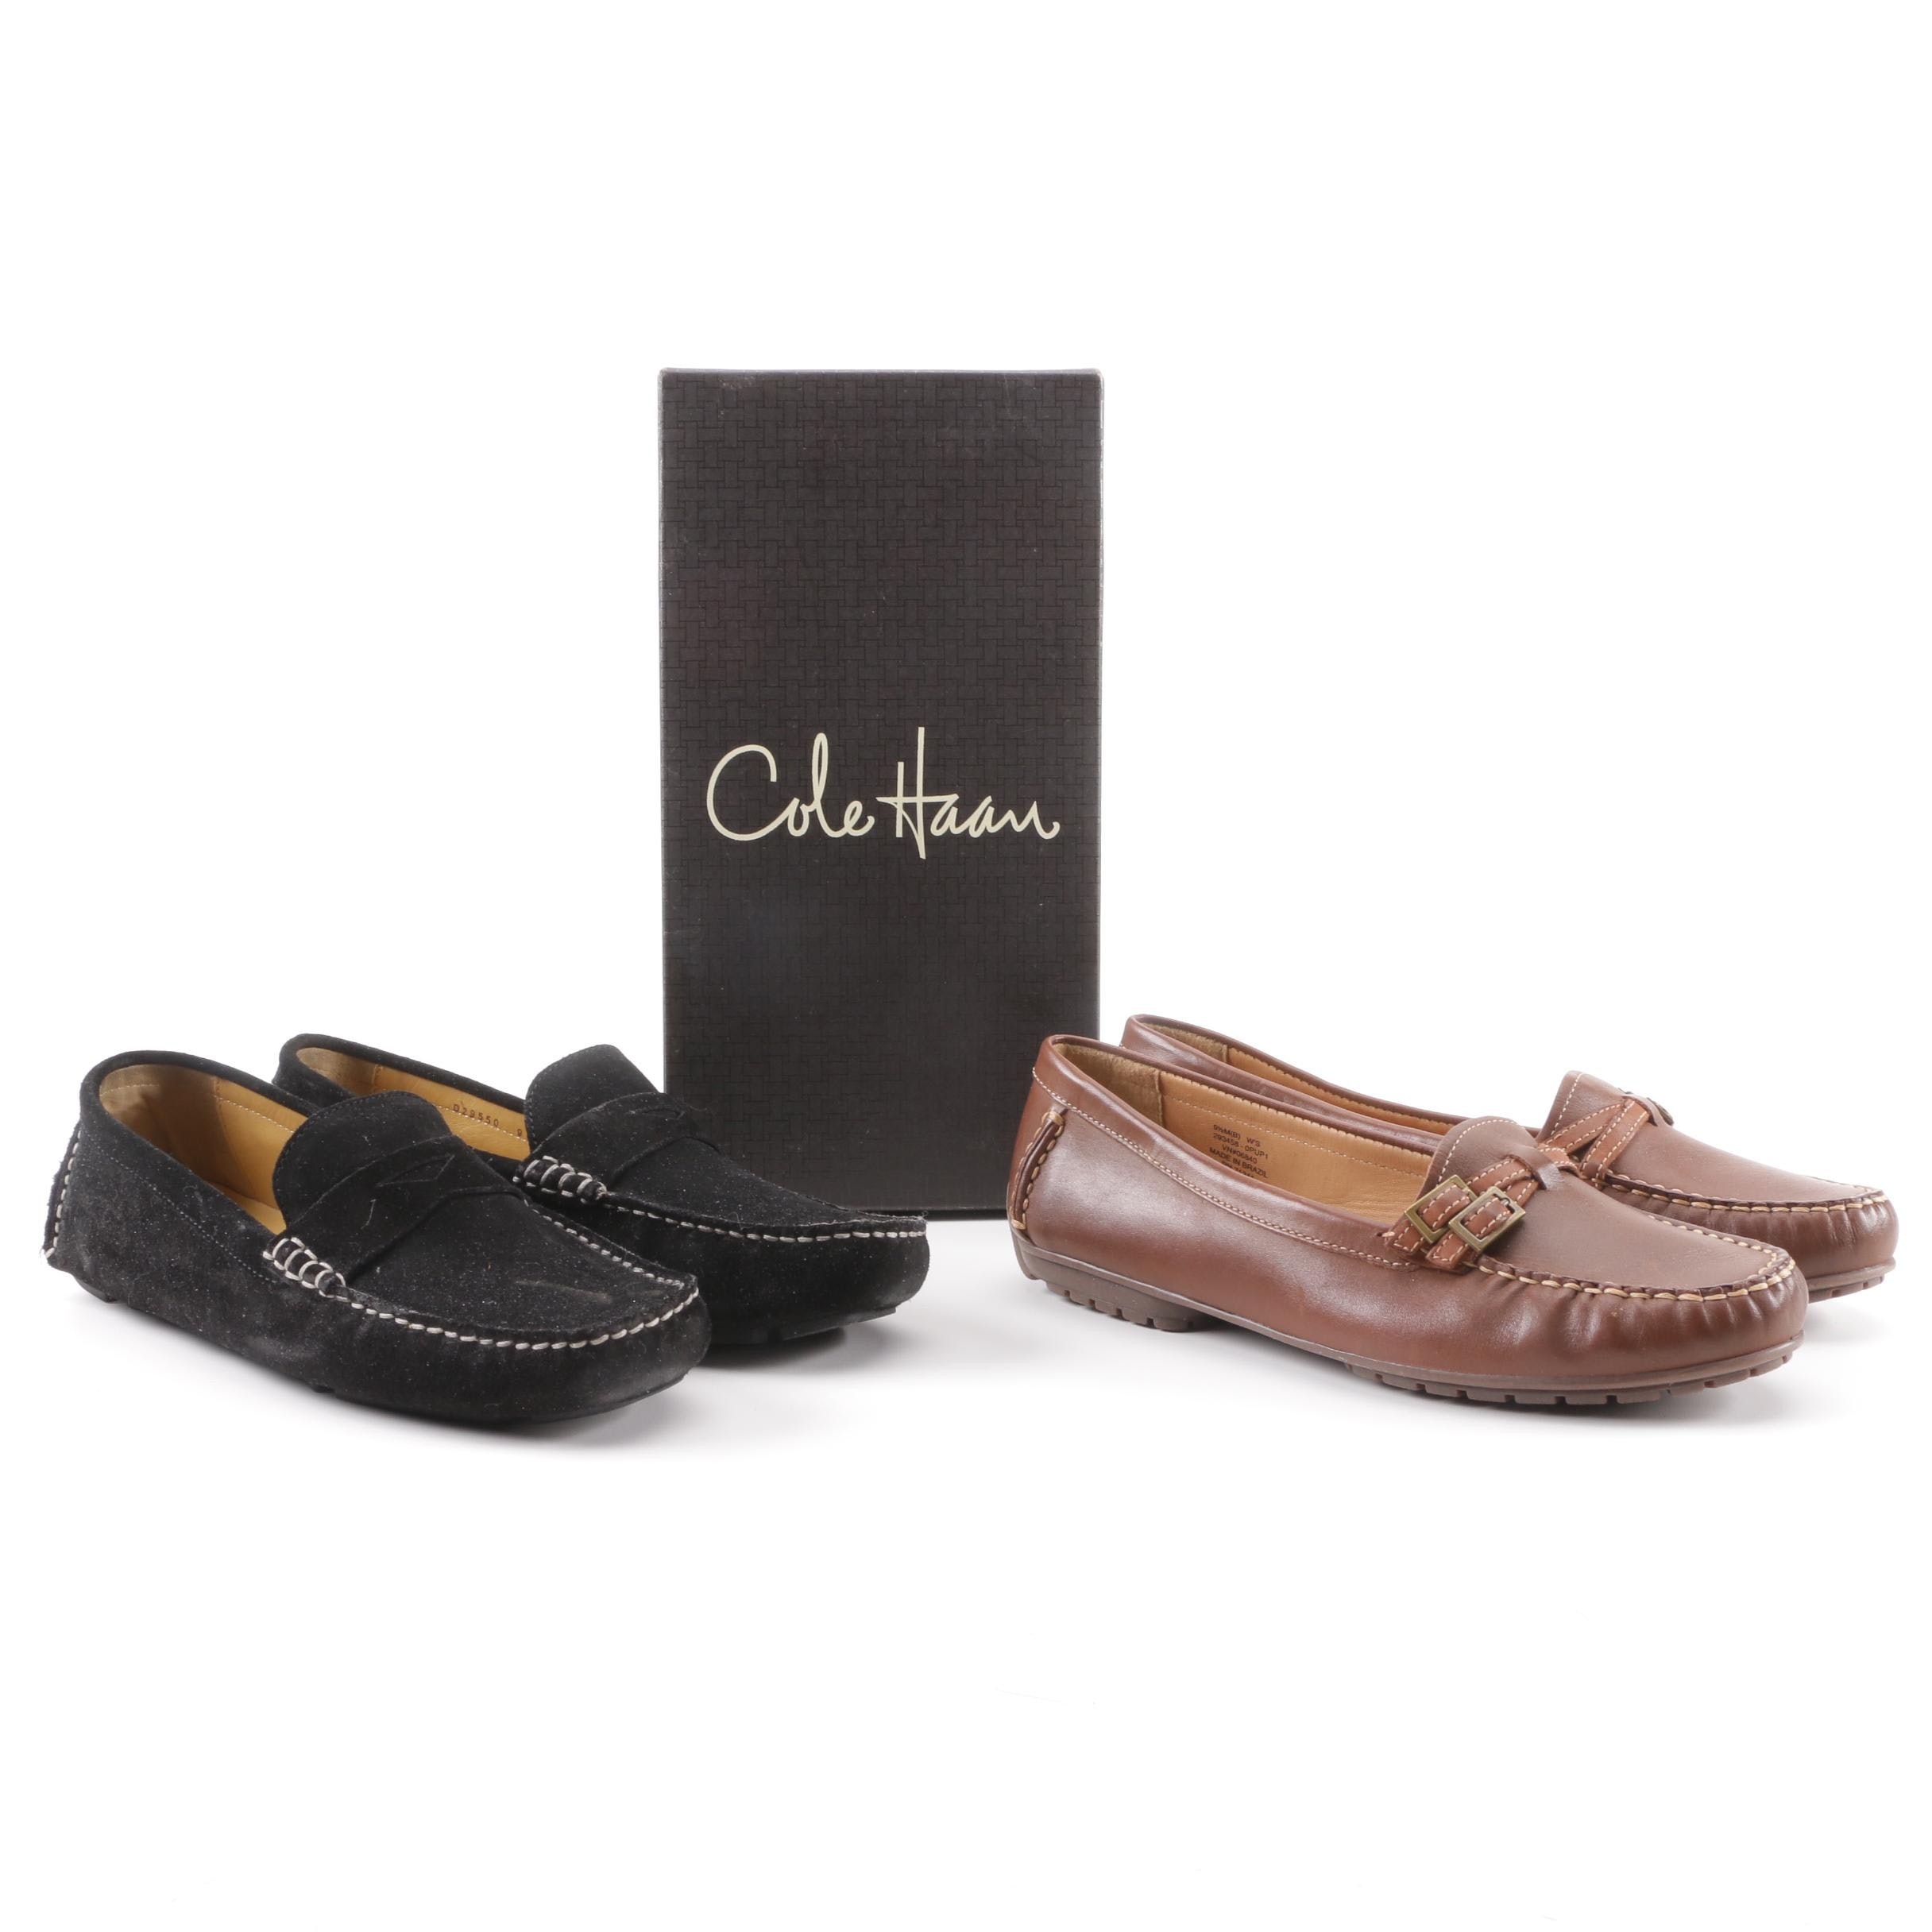 Cole Haan Black Suede Driver Mocs and L.L. Bean Brown Leather Loafers